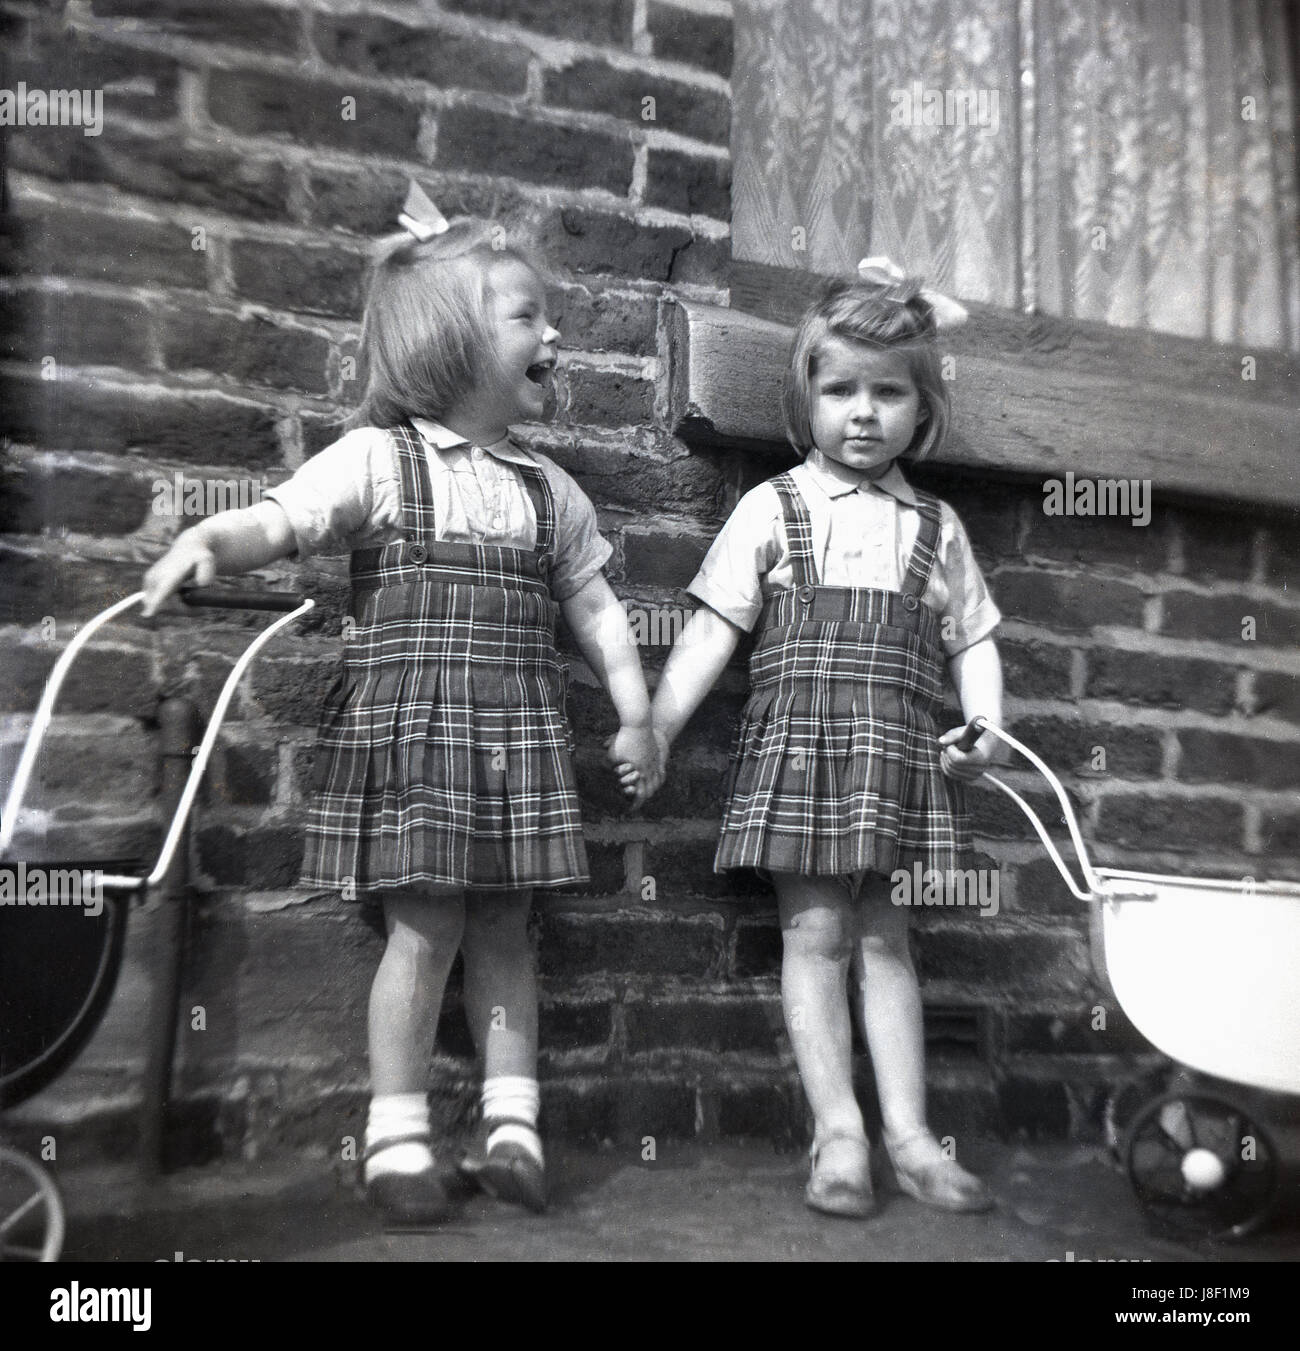 c8145da142ec 1950s, historical, two little girls, sisters, wearing matching tartan  dresses with their toy doll prams outside a brick house, one laughing,  holding hands.